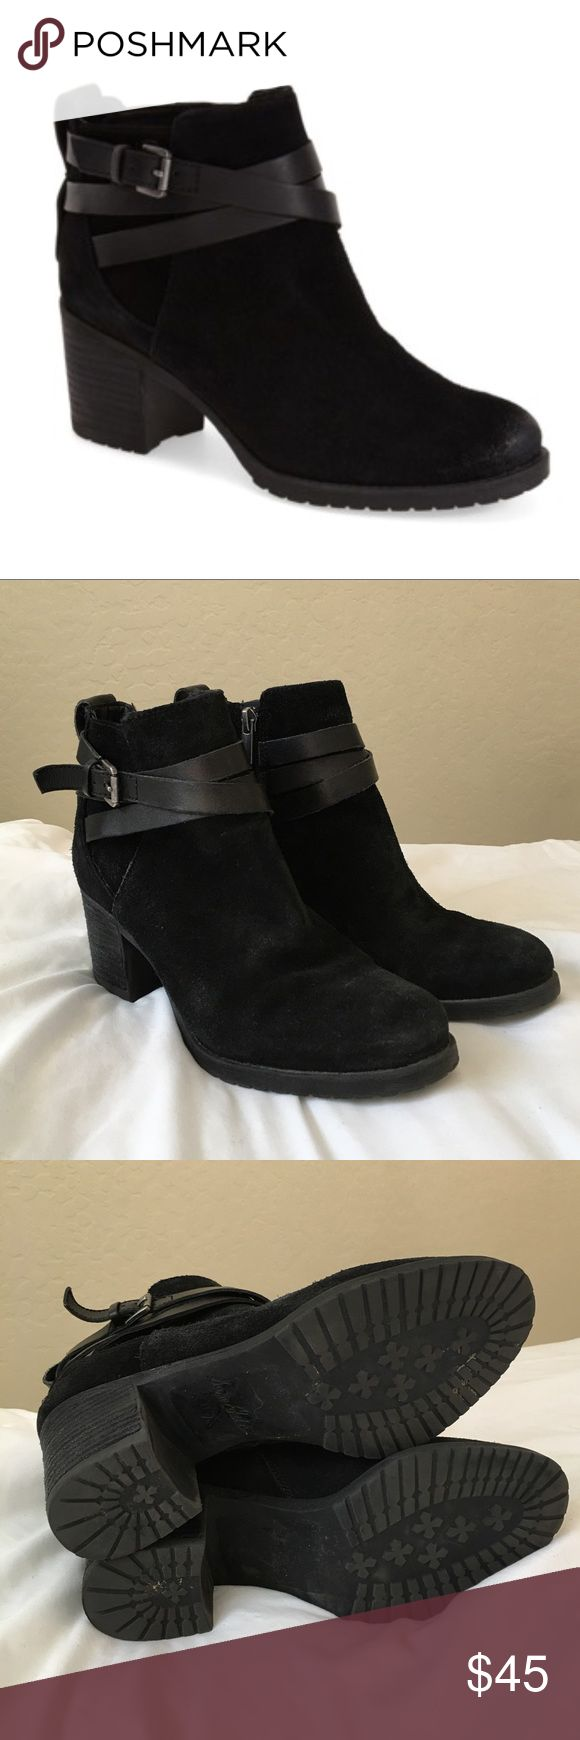 "Sam Edelman Hannah belted Chelsea Buckle Booties Excellent used condition Sam Edelman Hannah belted Chelsea style booties! These are super stylish and some refer to them as sam Edelmans ""motorcycle booties"". Black suede material. They have only been worn a couple of times and are in amazing condition! Get them at this hot price while you can! Let me know if you have any questions! Sam Edelman Shoes Ankle Boots & Booties"